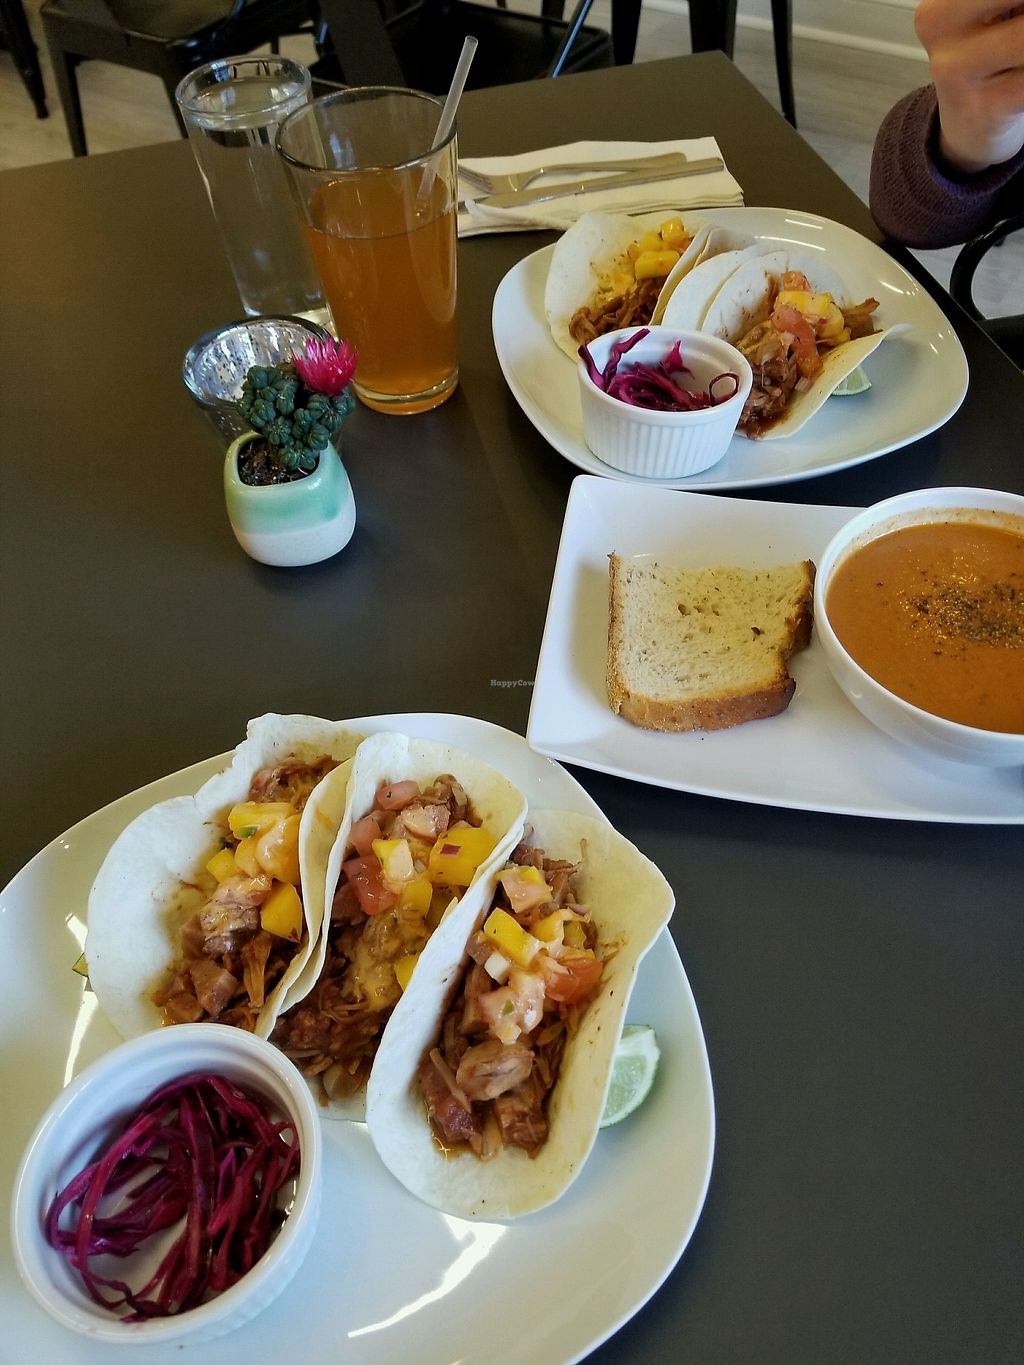 """Photo of Leaf  by <a href=""""/members/profile/Alosea"""">Alosea</a> <br/>Jackfruit tacos and red pepper soup <br/> January 26, 2018  - <a href='/contact/abuse/image/105190/351249'>Report</a>"""